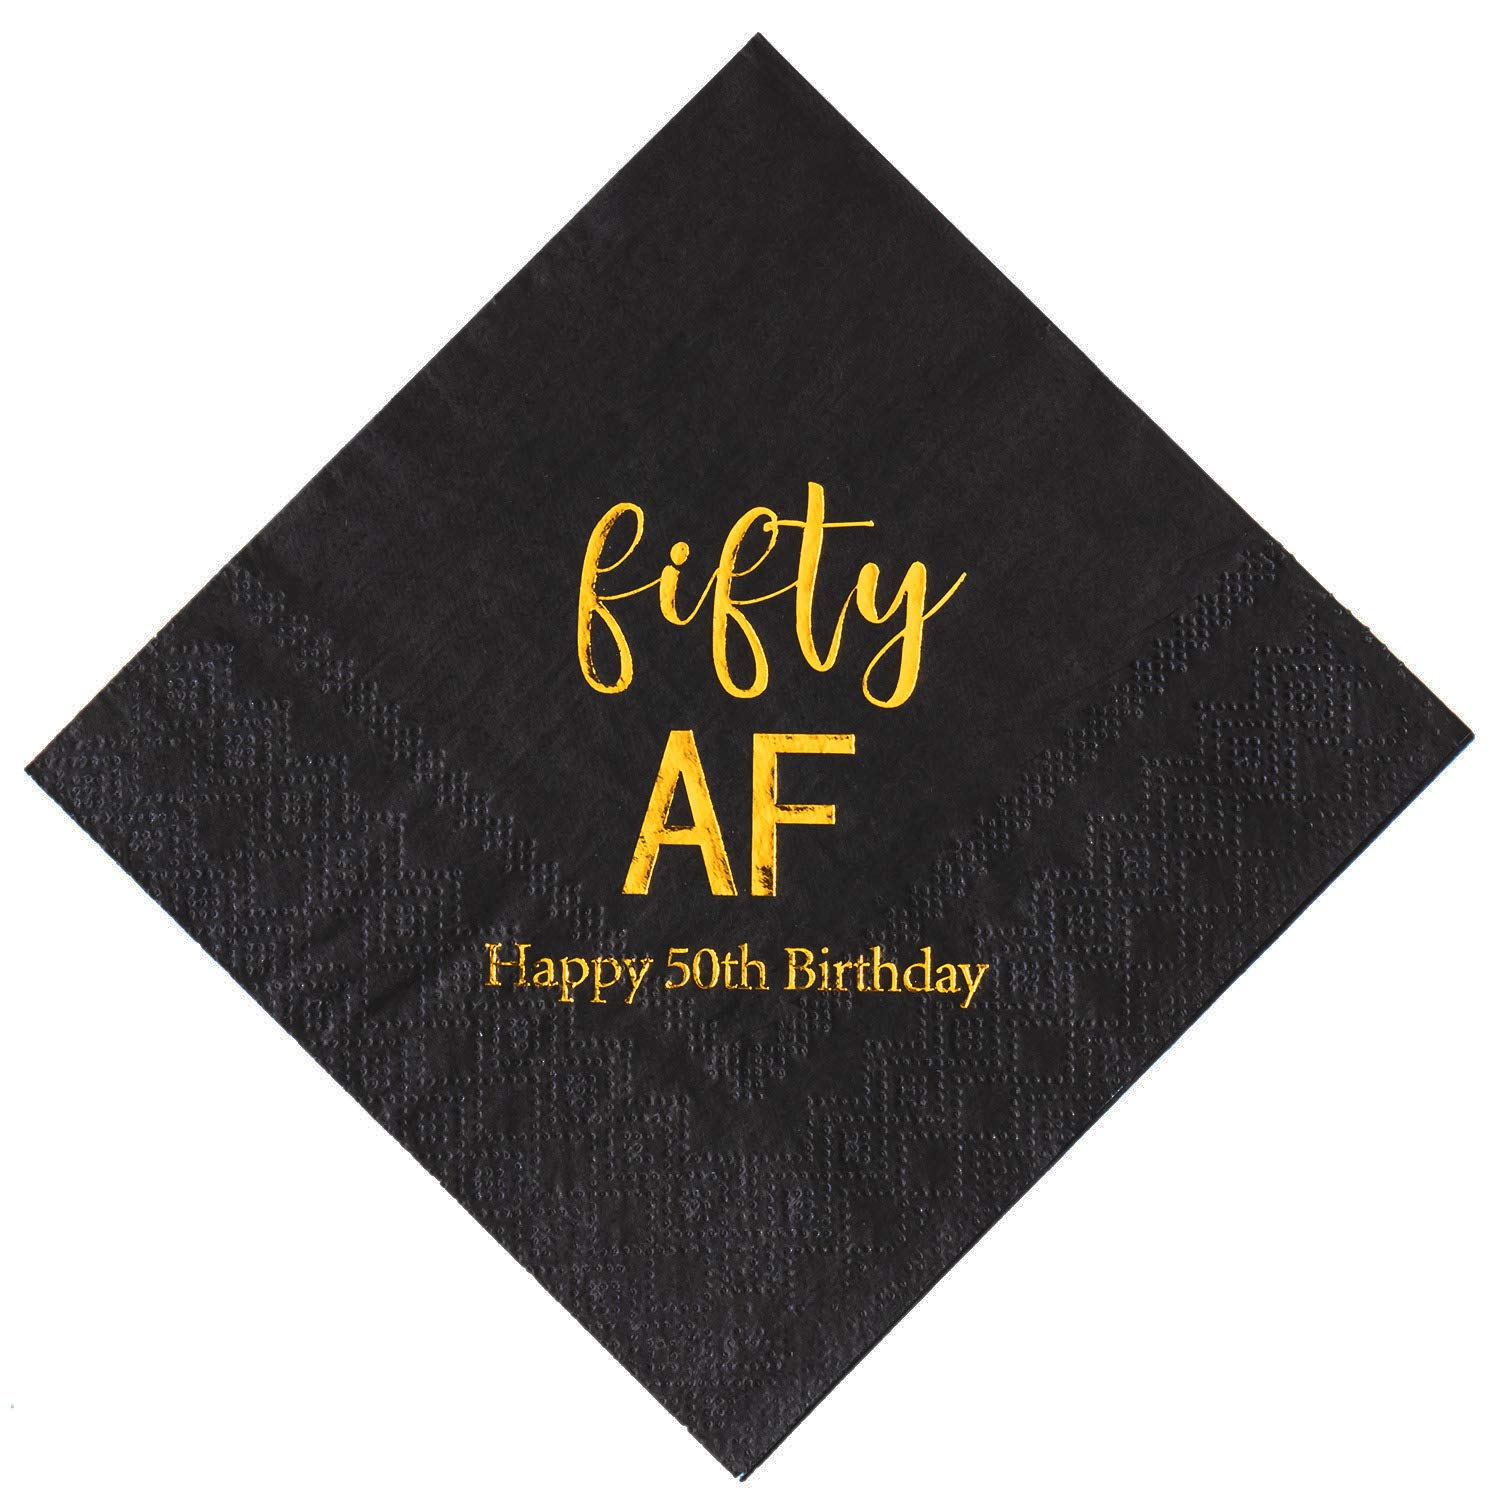 Crisky 50th Birthday Napkins Black Gold Fifty AF 50th Birthday Cocktail Napkins Beverage Napkins 50th Birthday Party Candy Table Decoration, 100 Count, 3-Ply